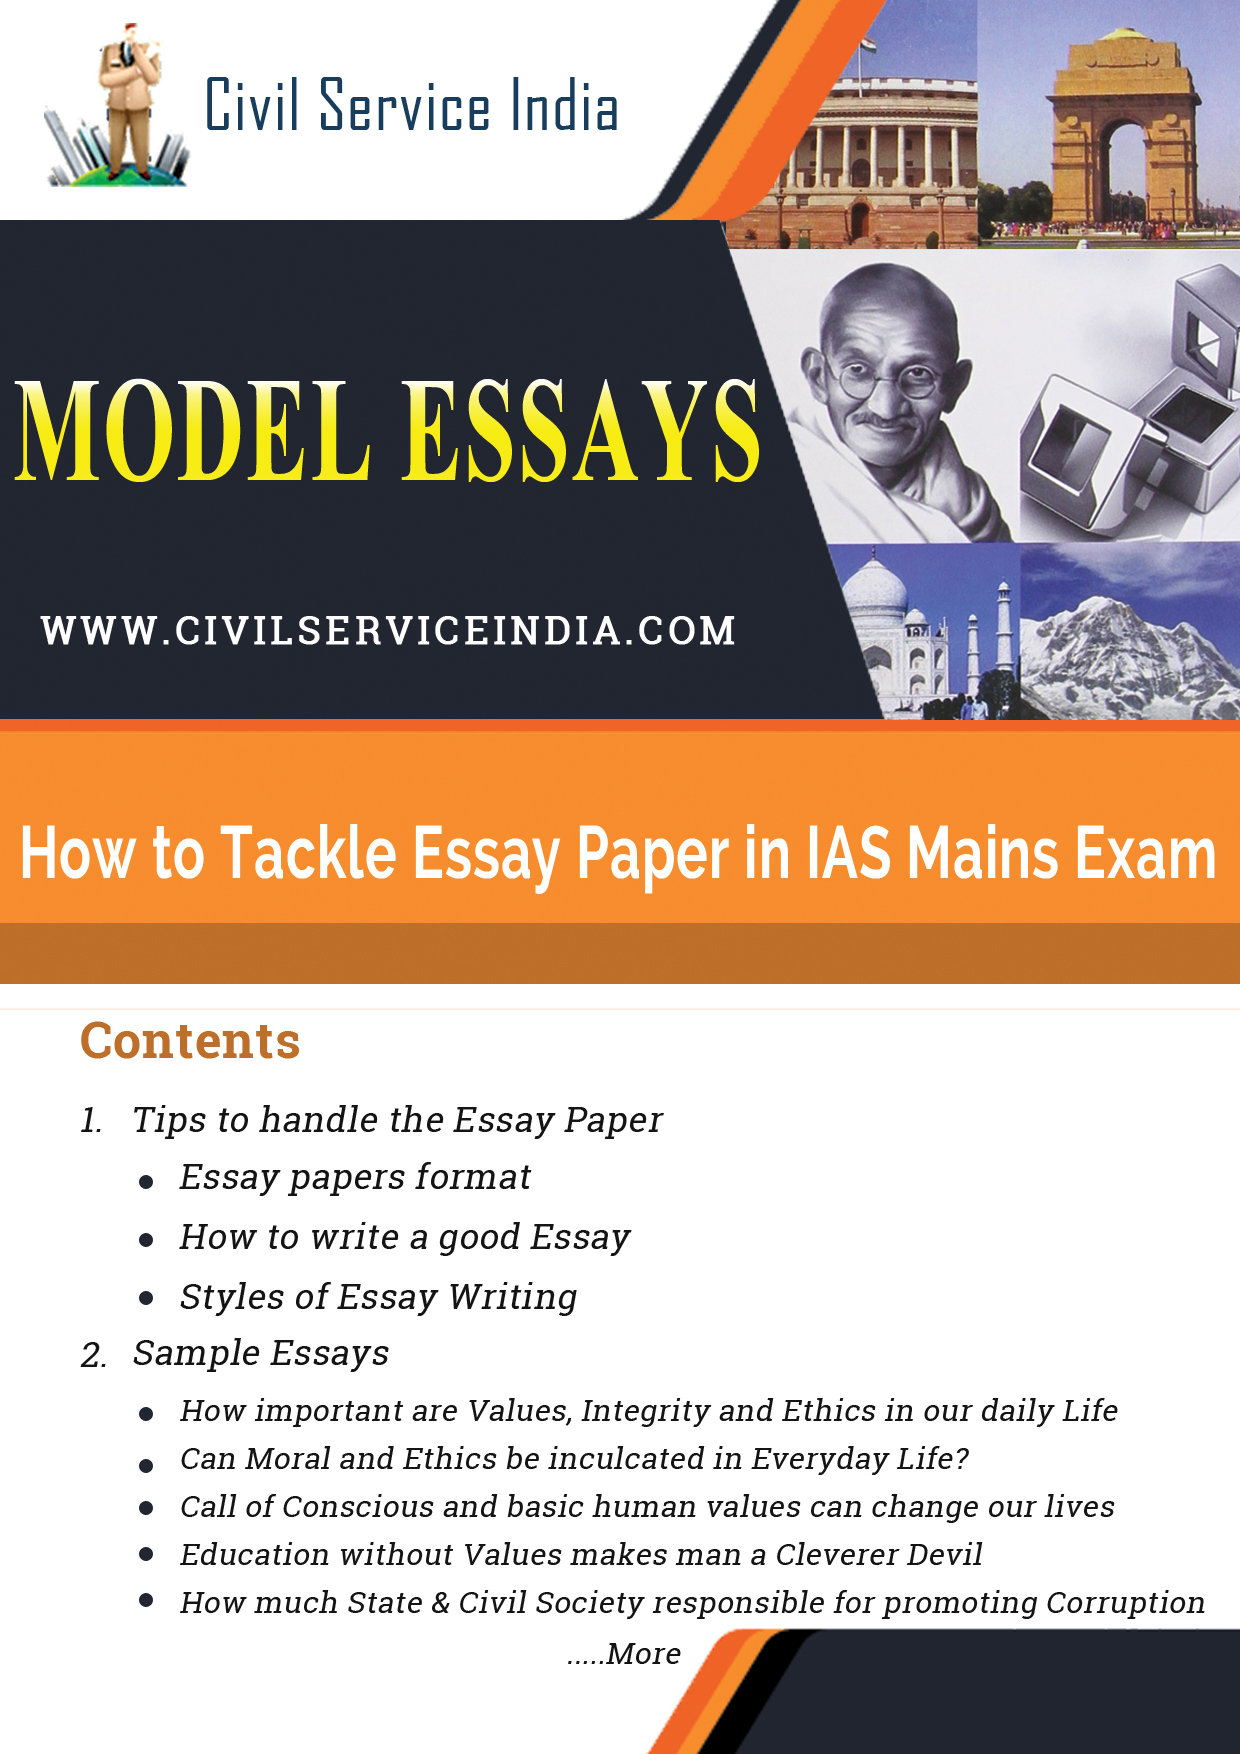 Essay writing helper vision ias